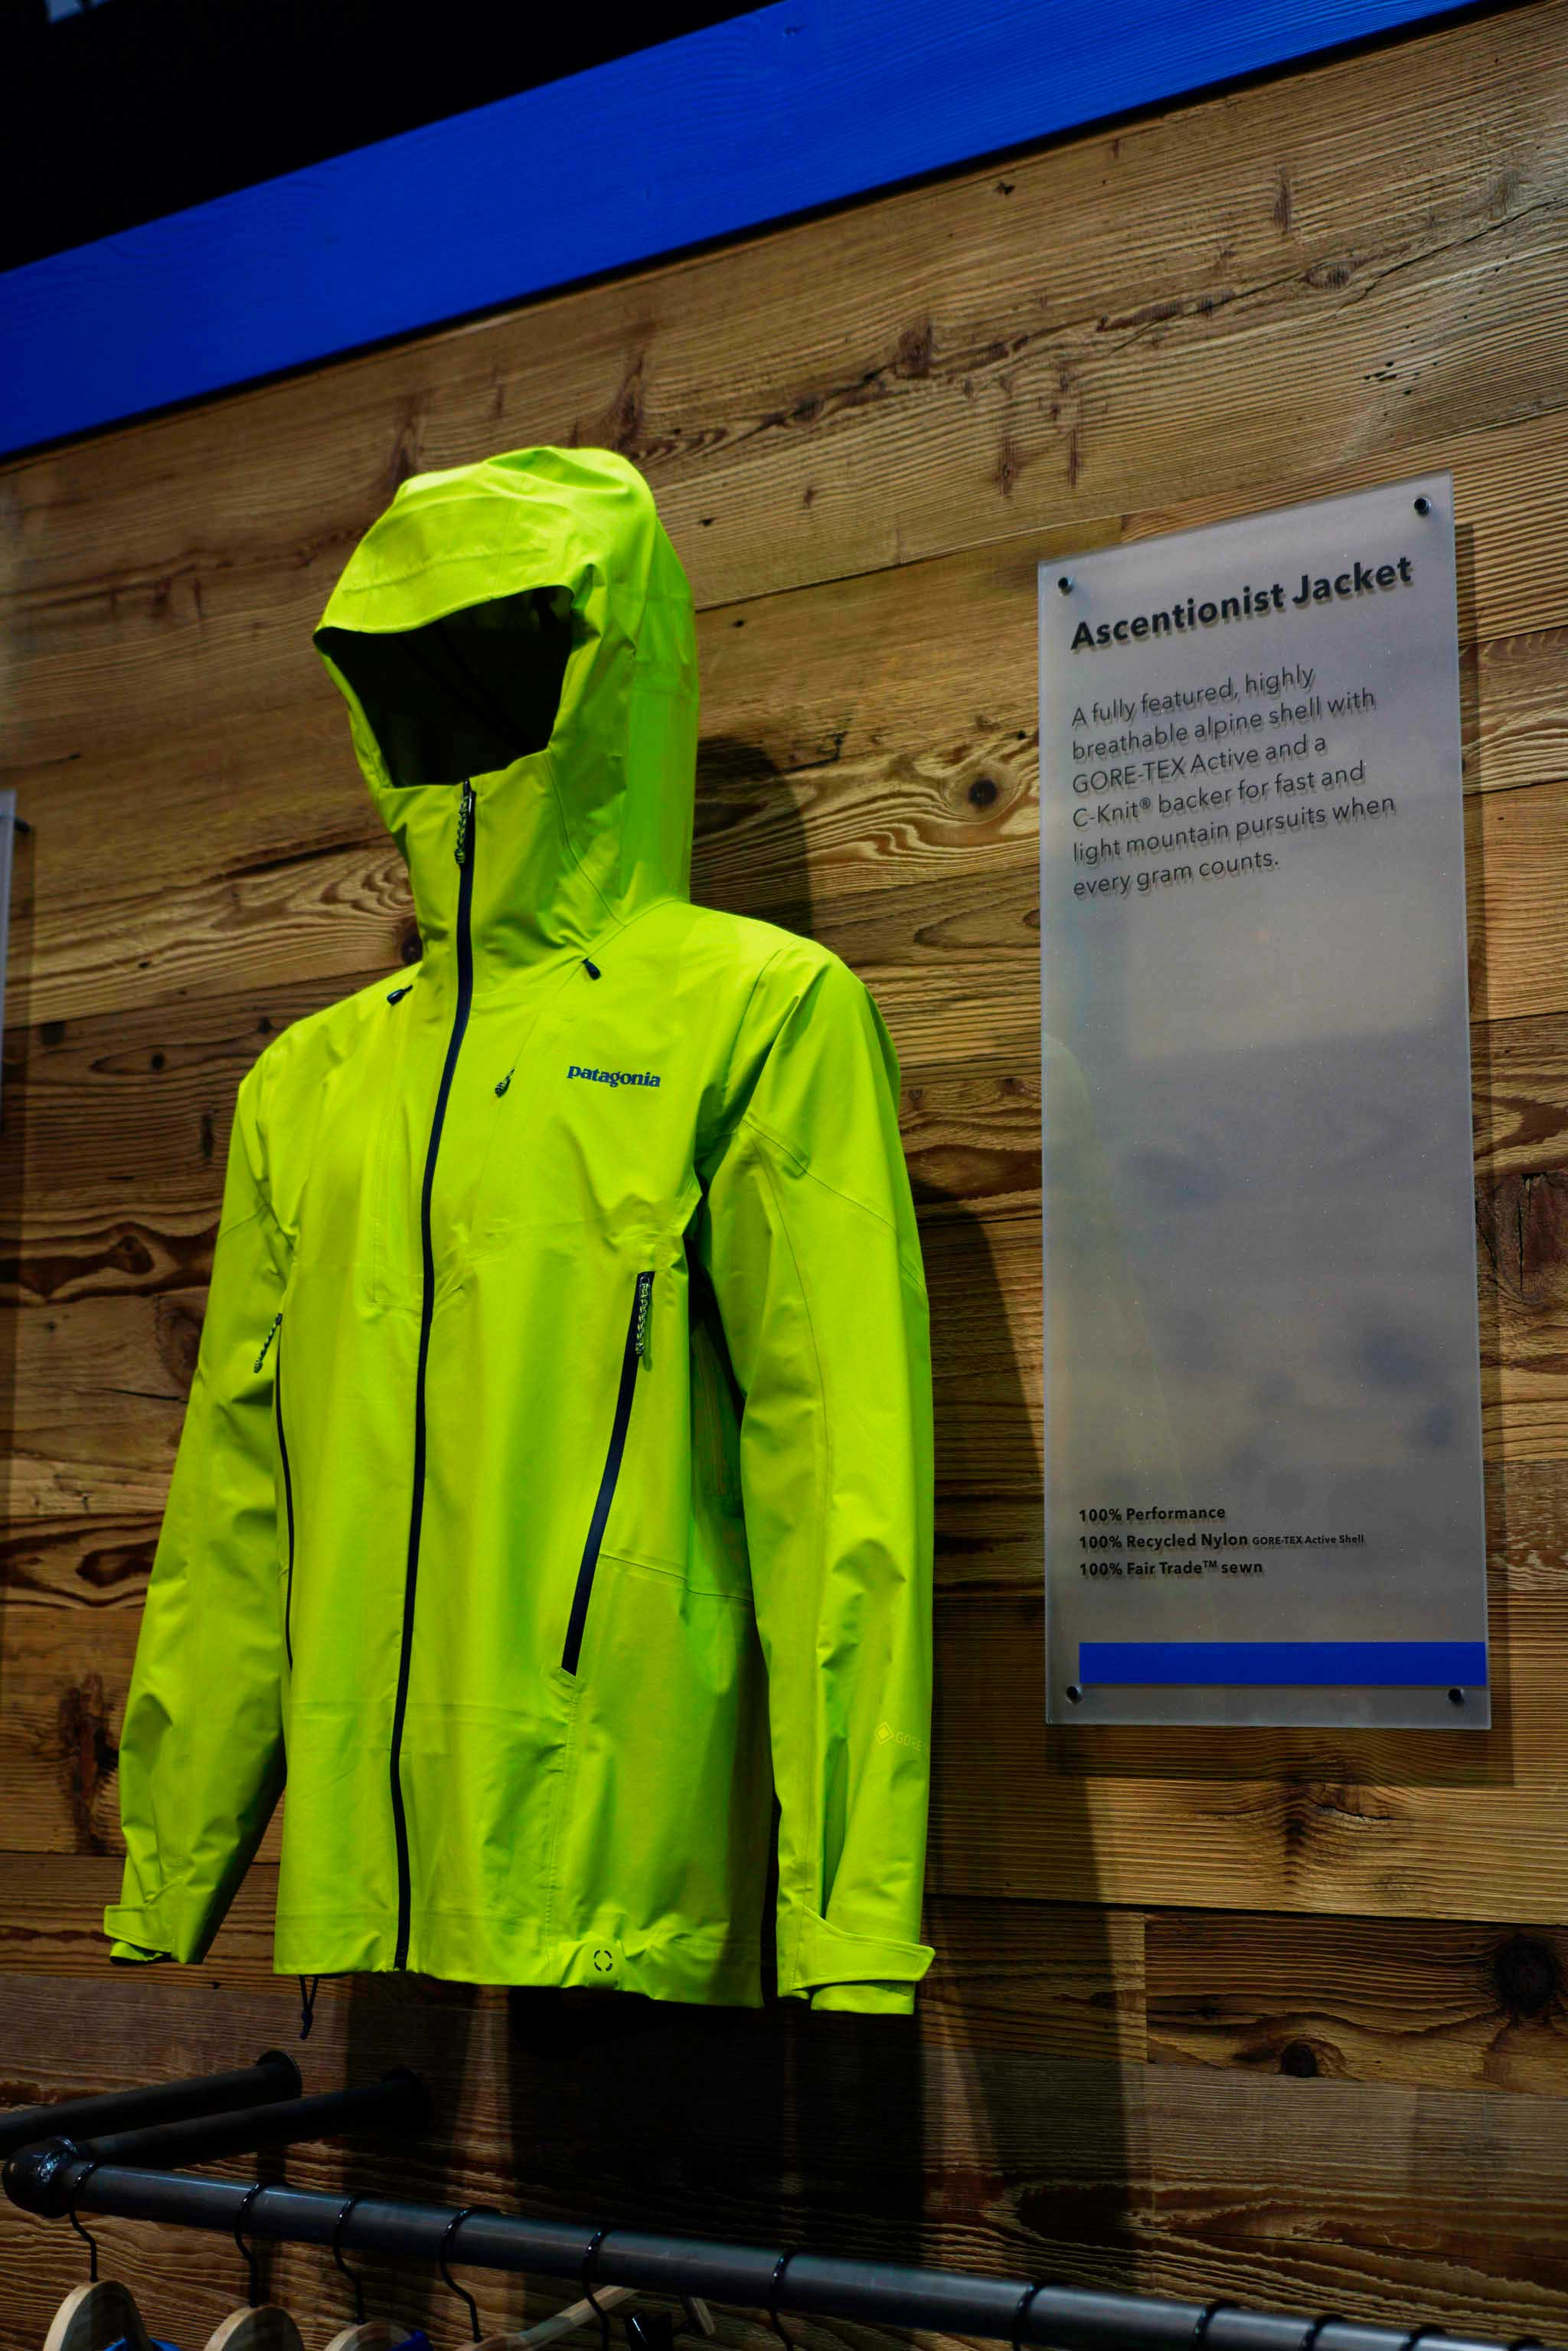 Patagonia Ascentionist Jacket 19/20